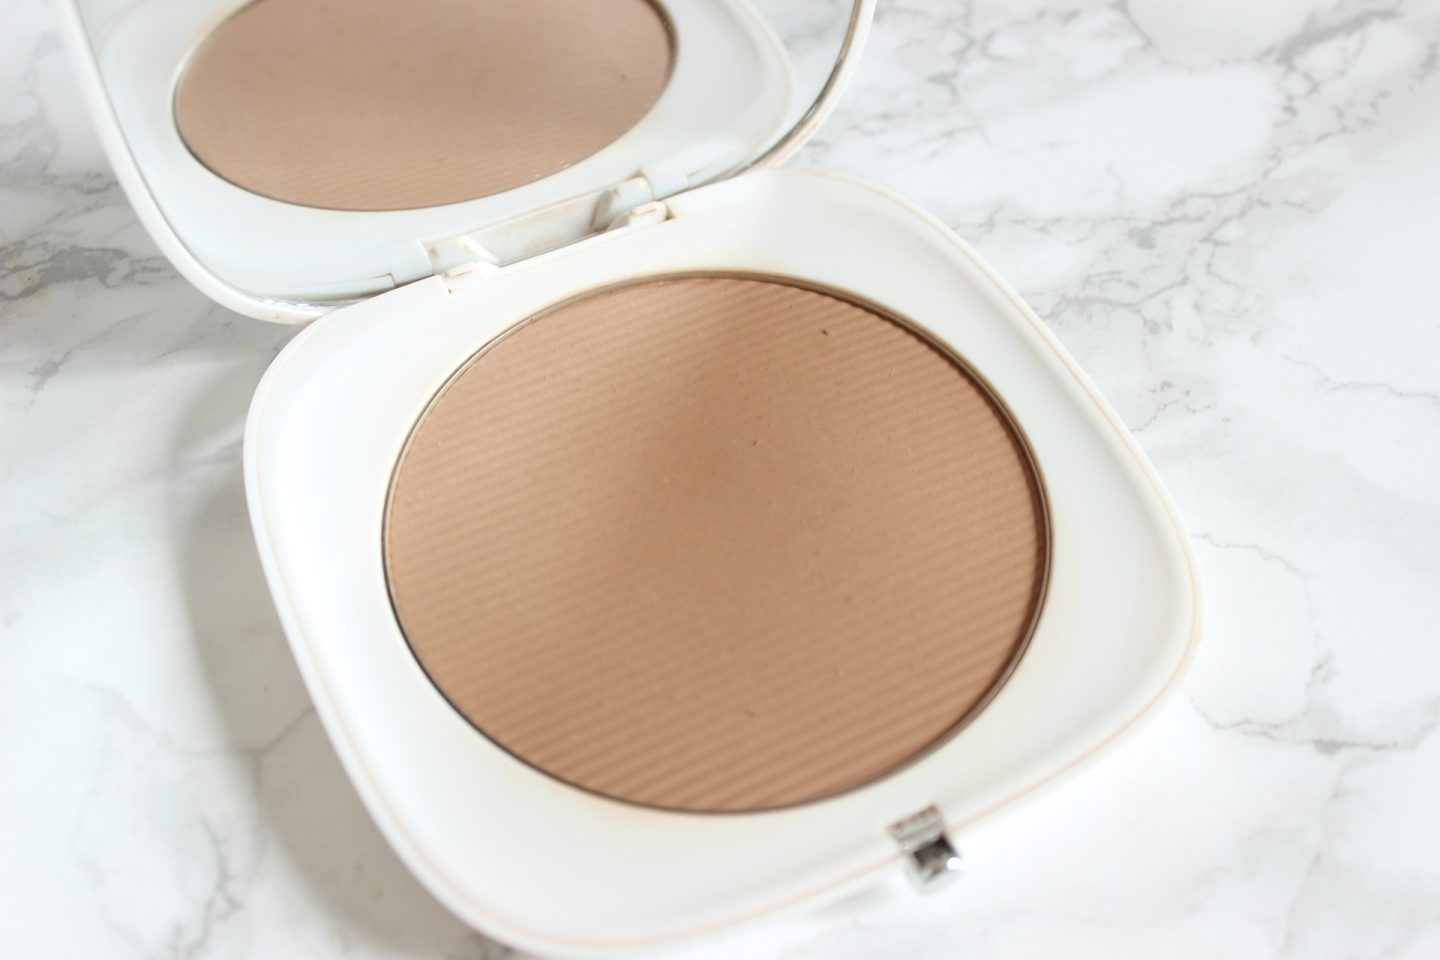 Marc Jacobs Tan-Tastic O!Mega Bronzer Coconut Perfect Tan